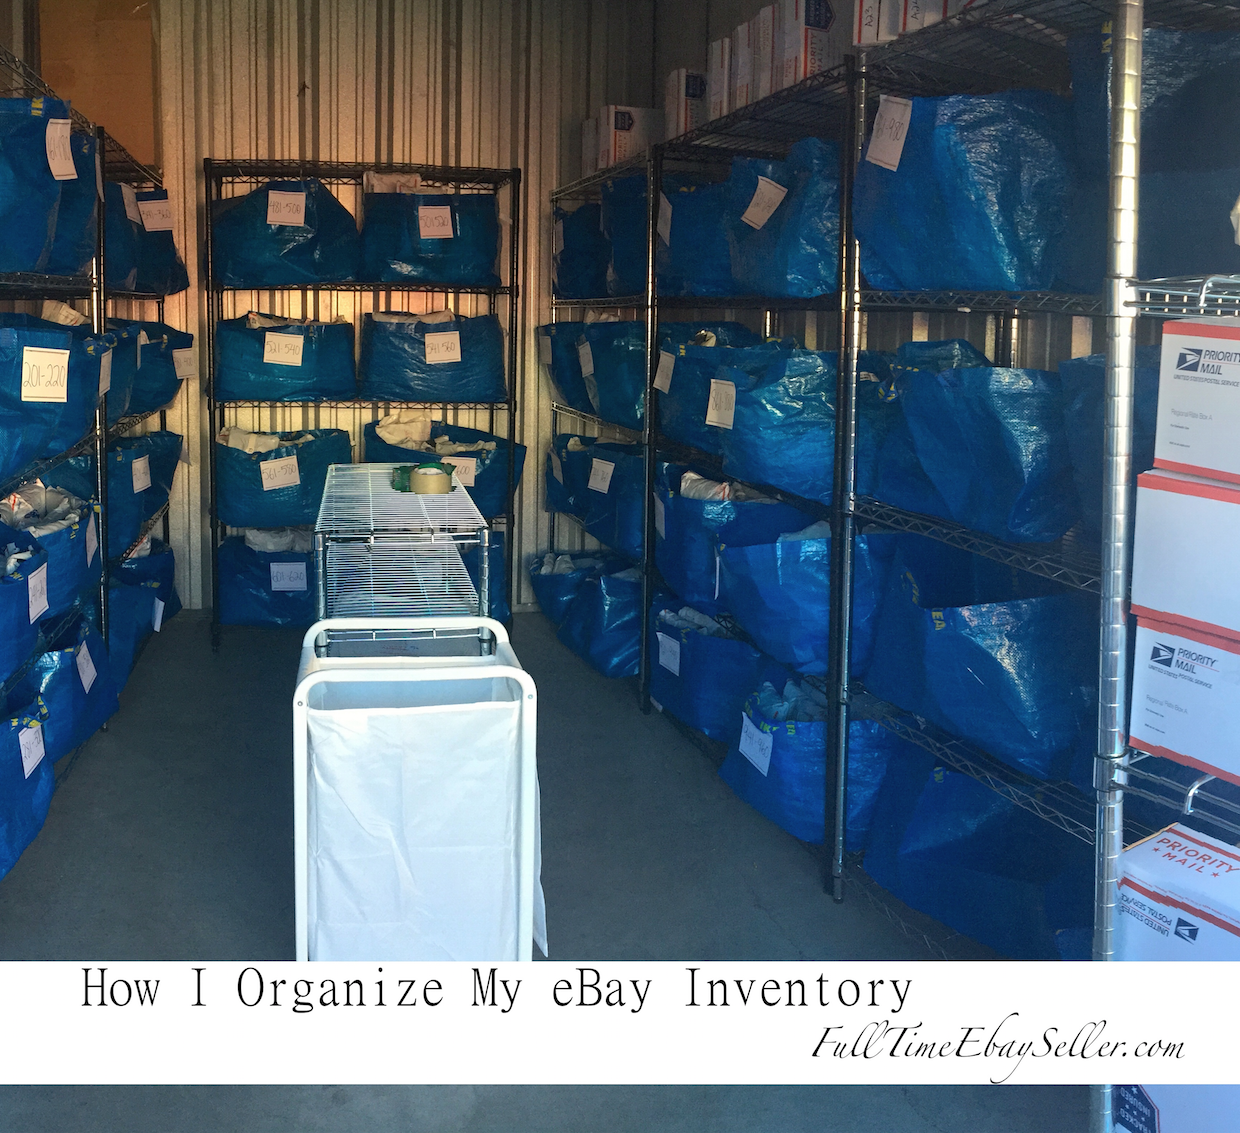 medium resolution of how they organize their ebay inventory using ikea blue bags and a numbered system